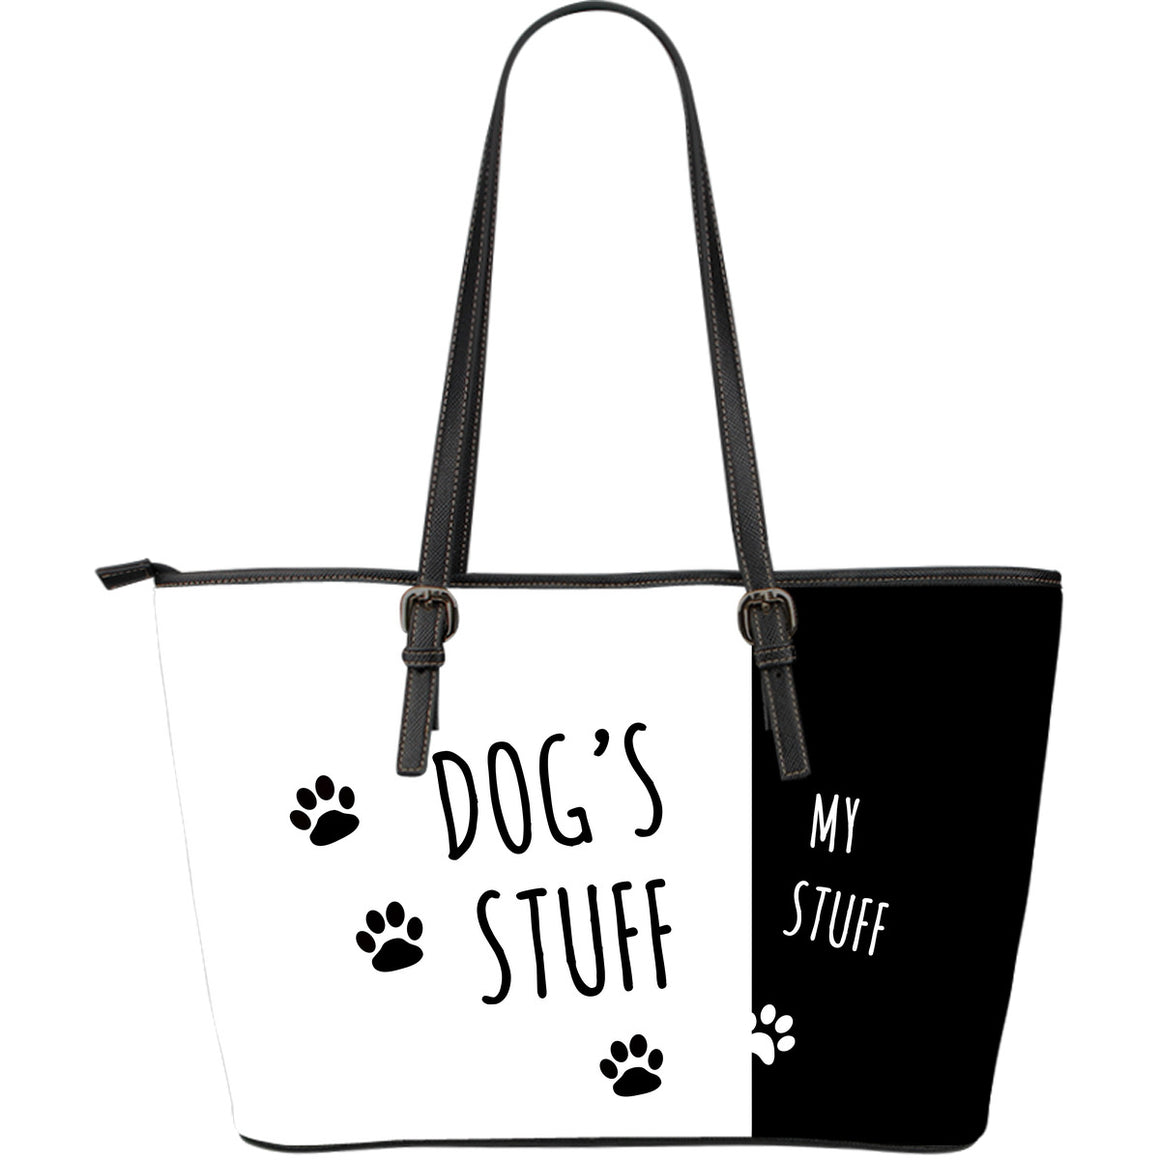 Dog's Stuff | My Stuff Large Leather Tote